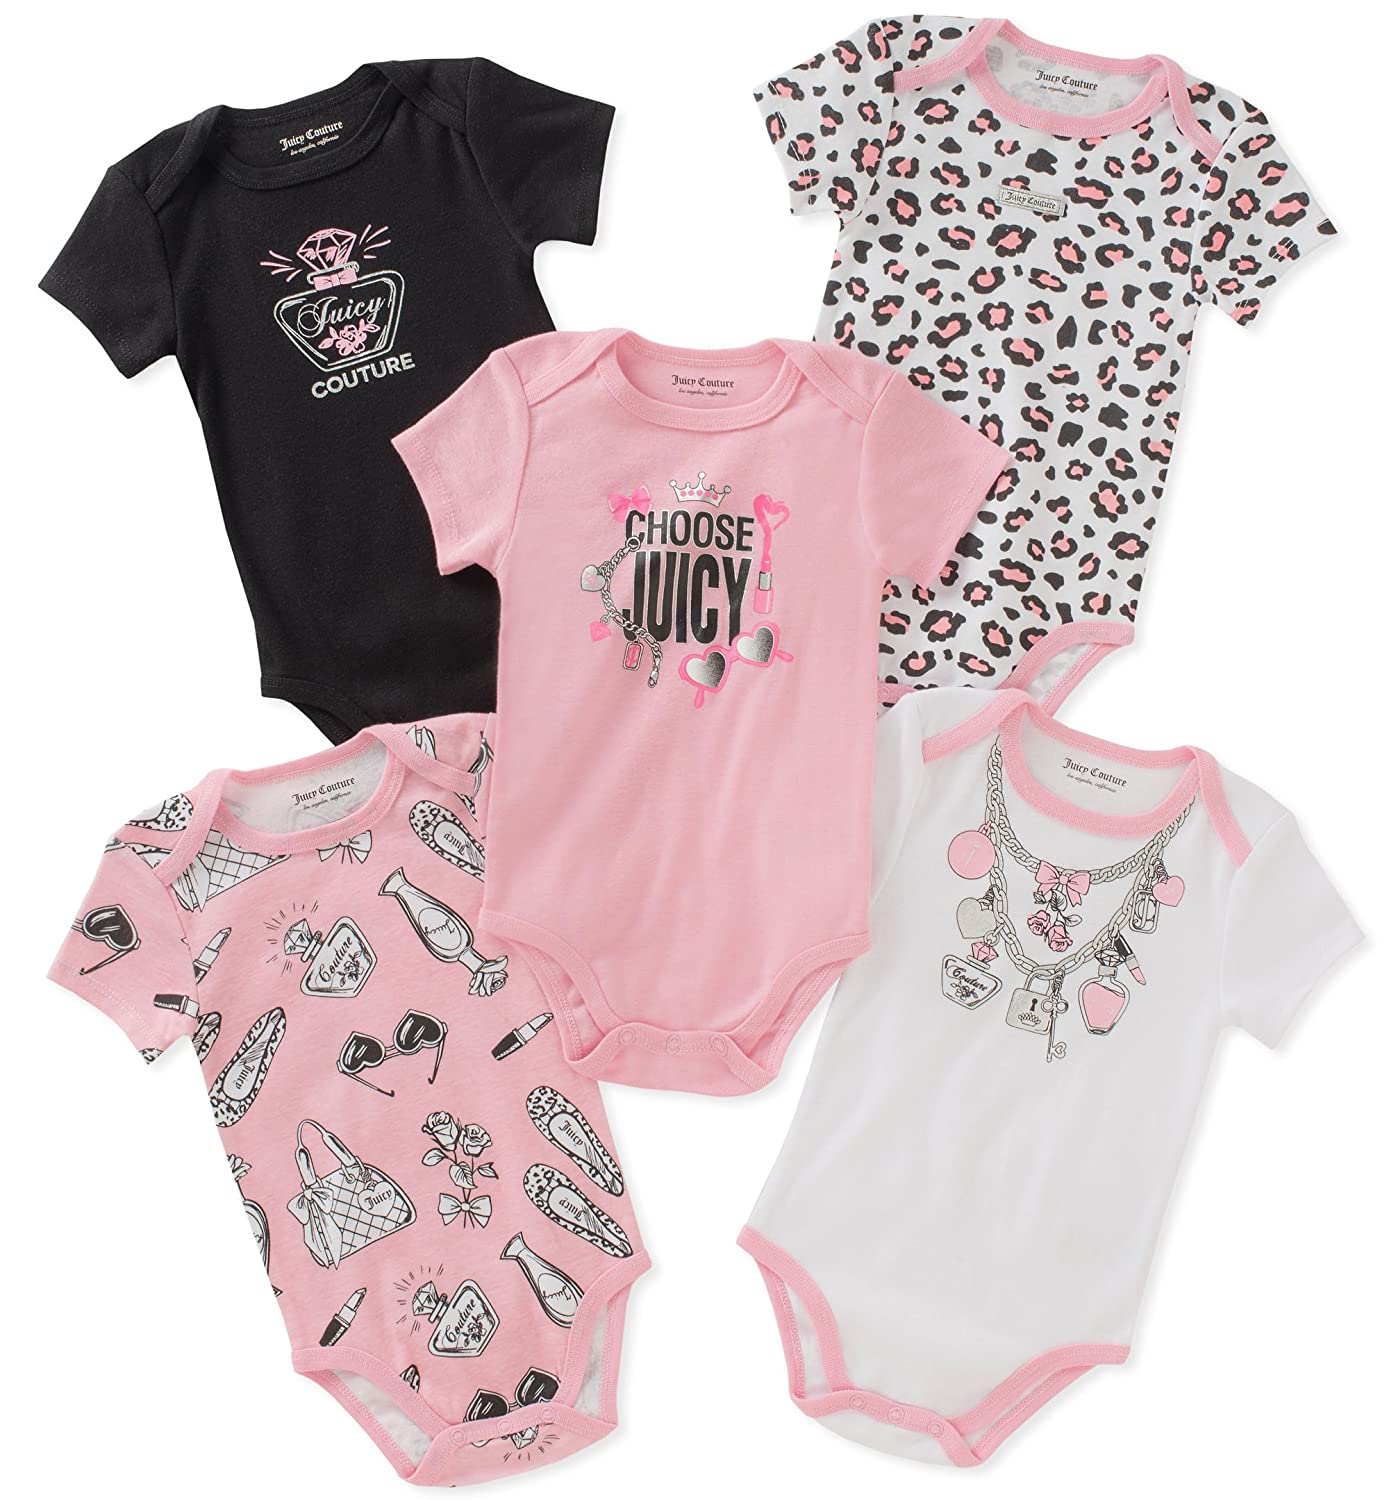 1a64fc132405 Amazon.com  Juicy Couture Baby Girls 5 Packs Bodysuit  Clothing